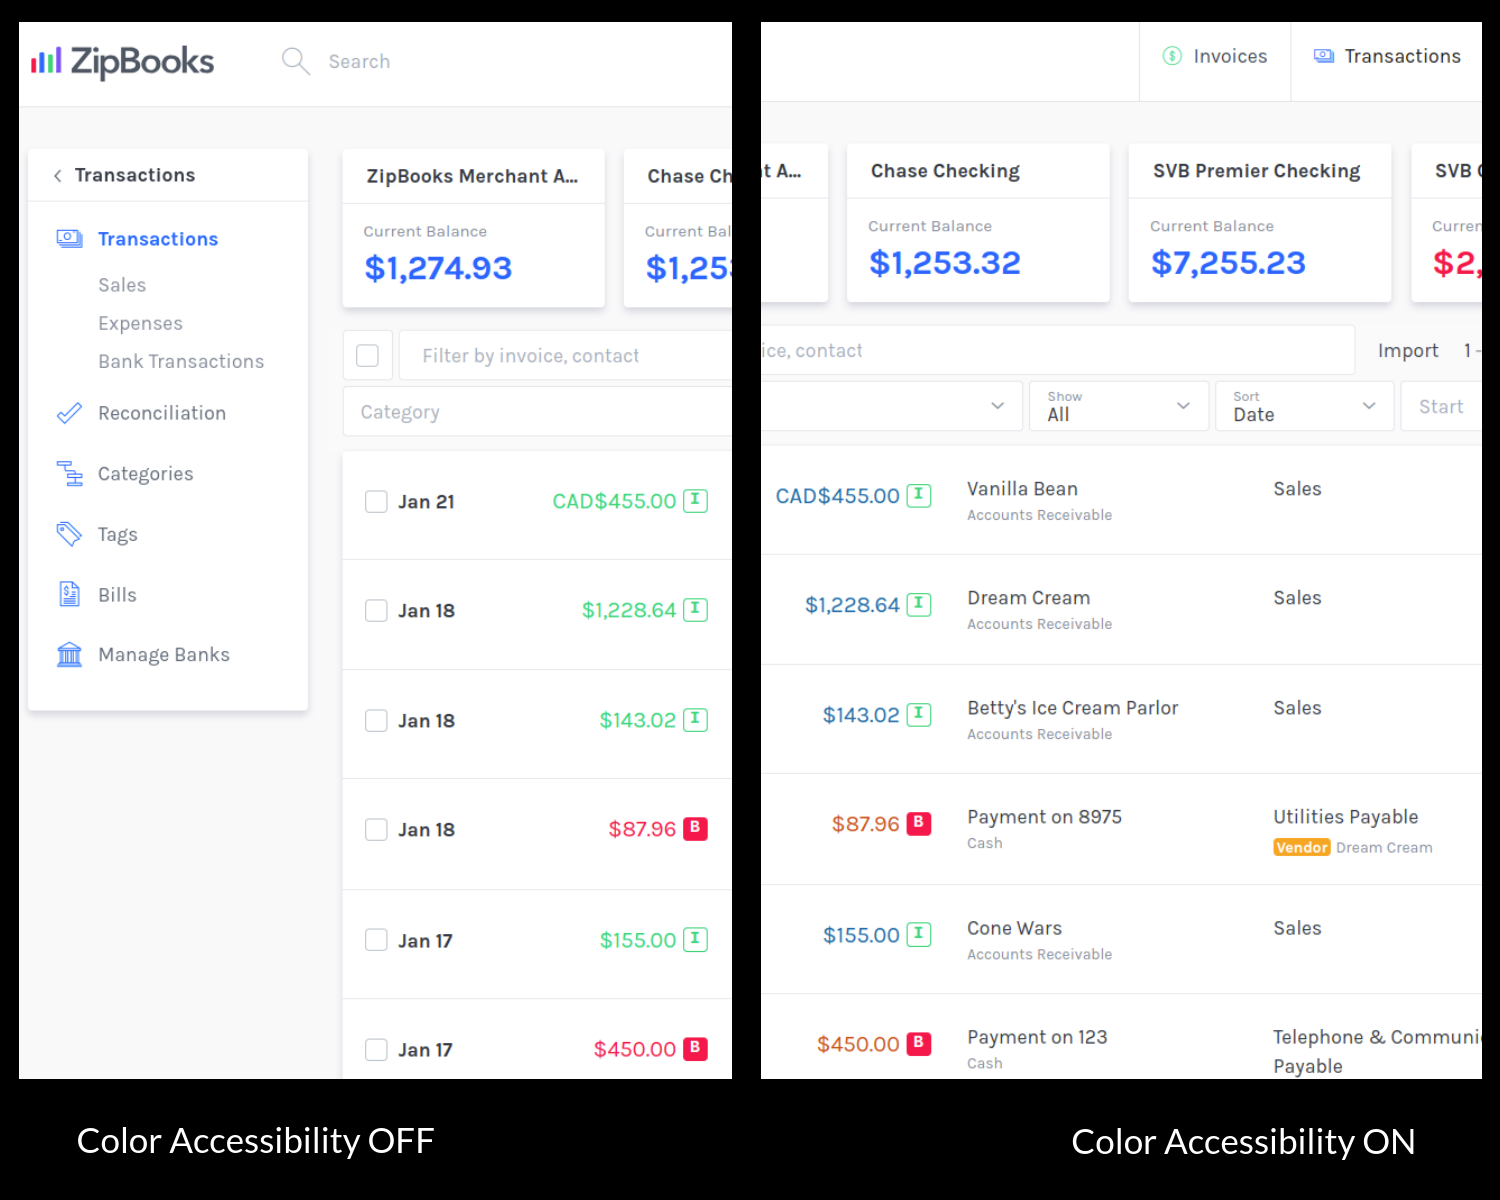 zipbooks color accessibility